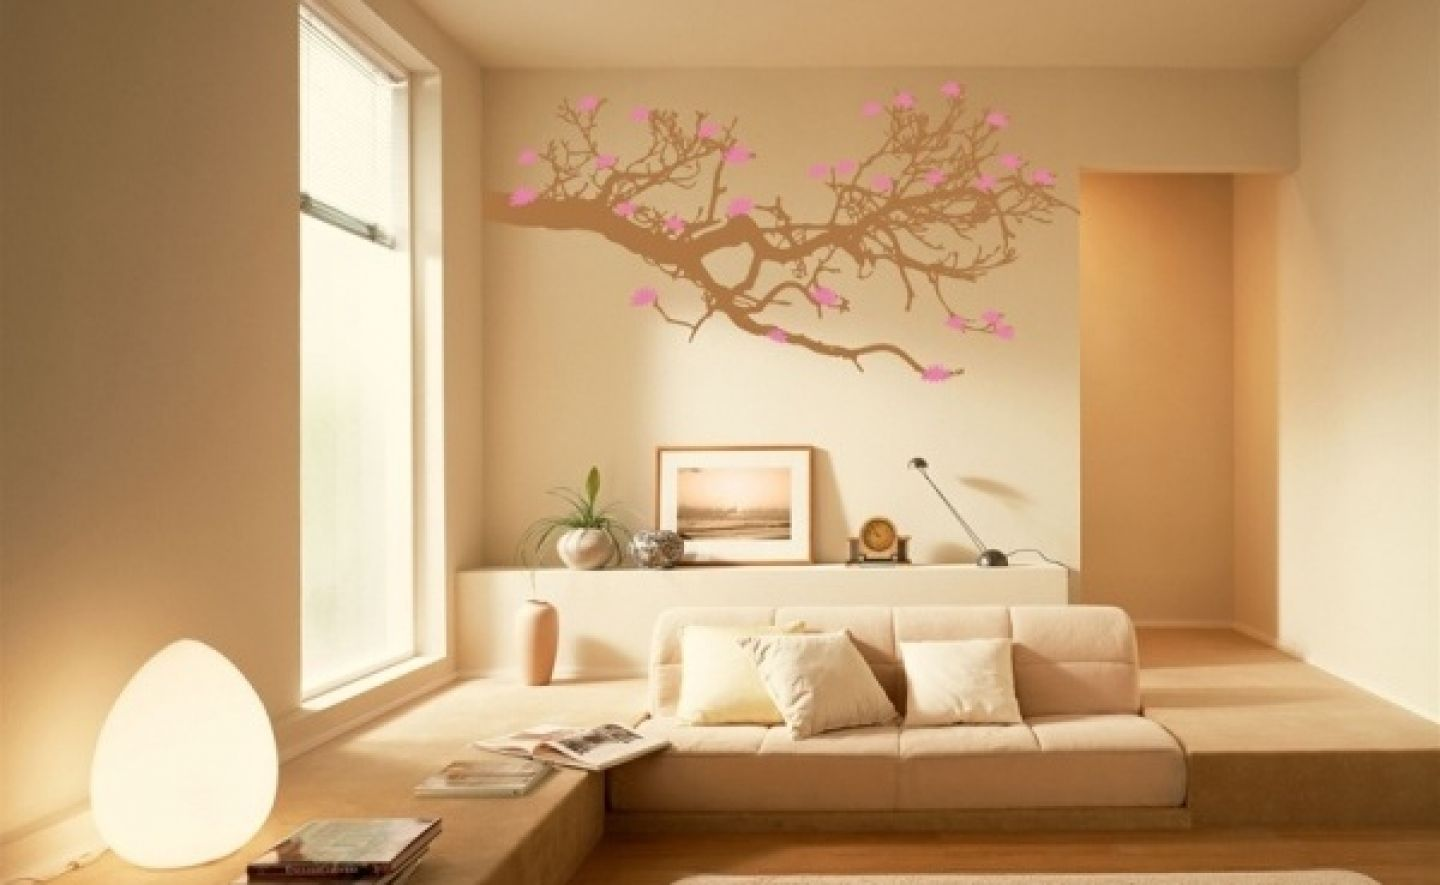 Interior Painting Ideas  Wallpaper Interior Designs Wall Painting Amusing Paint Design For Living Room Walls Design Inspiration